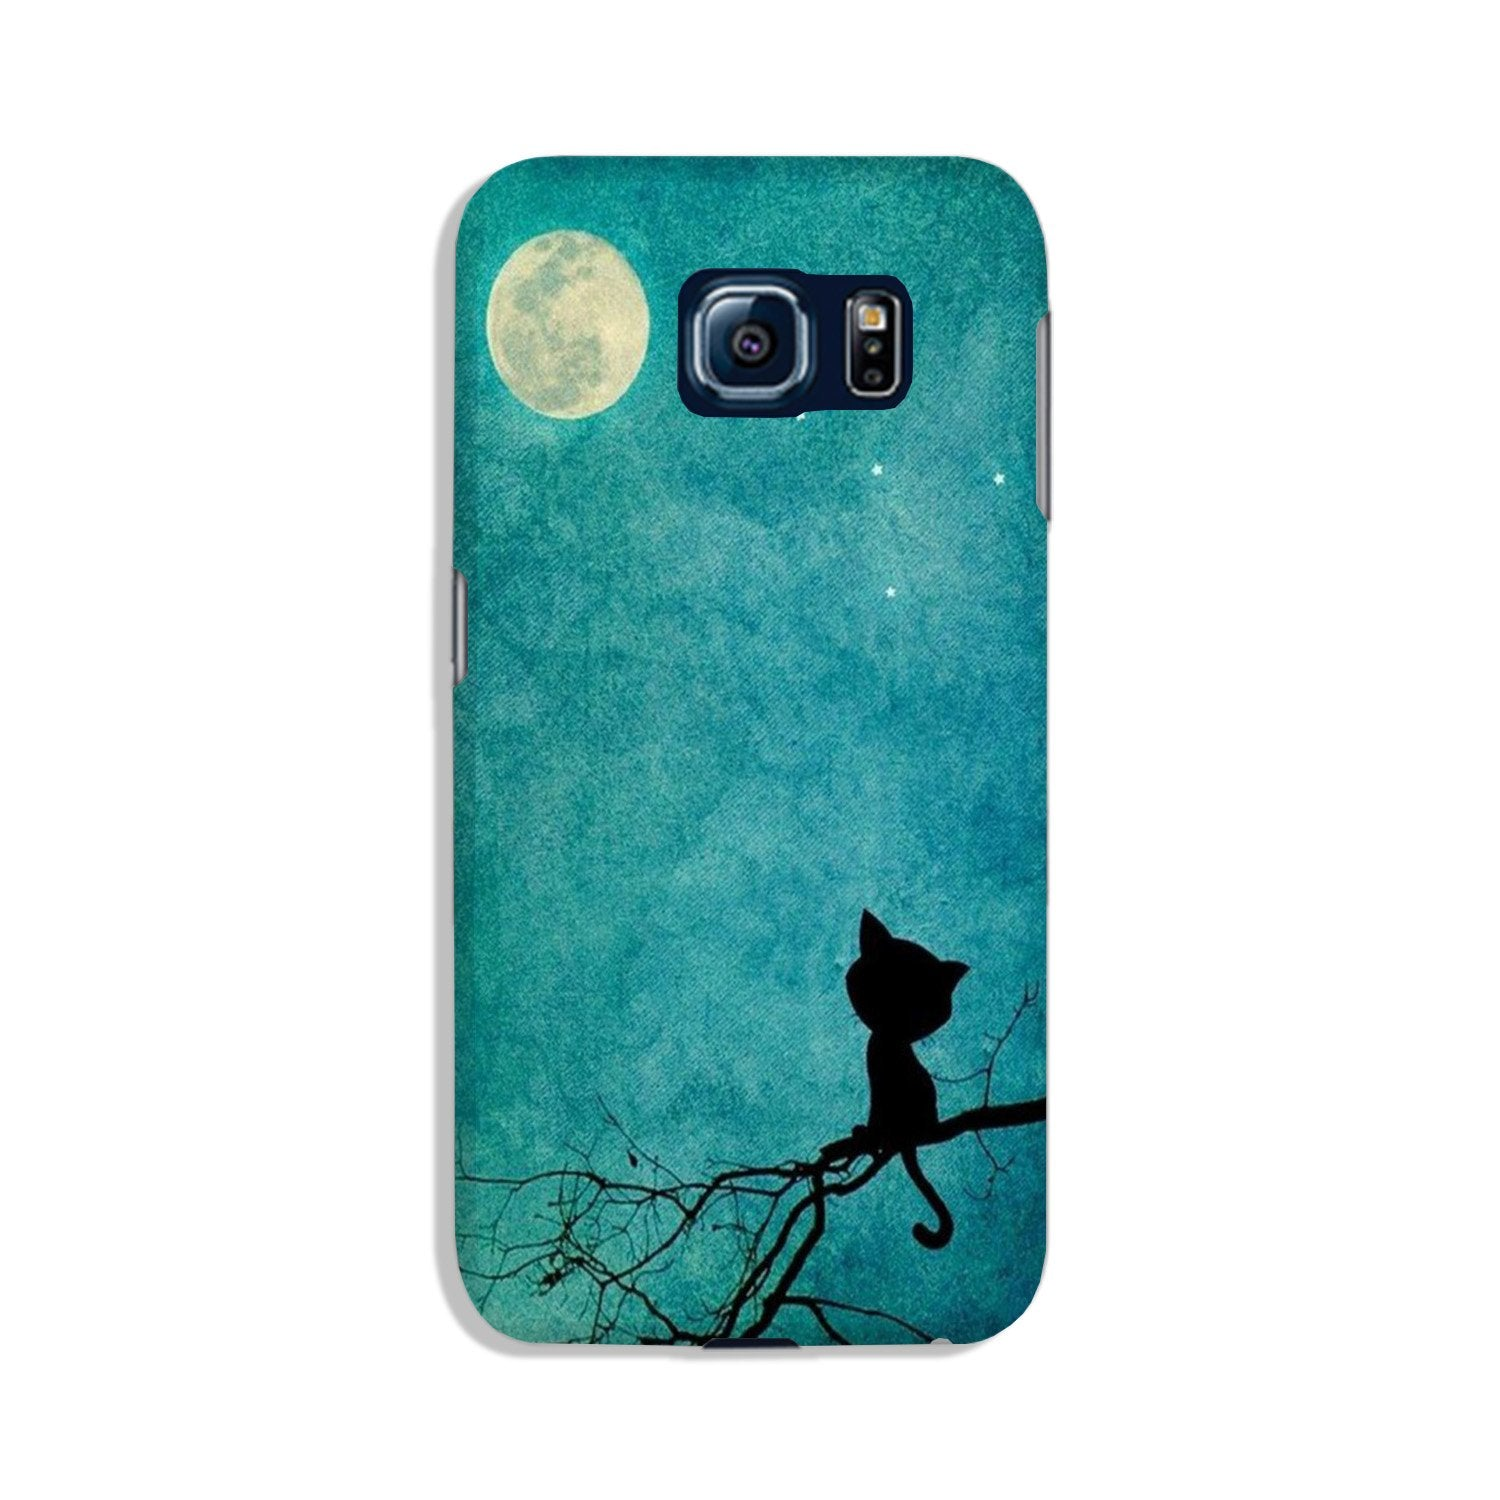 Moon cat Case for Galaxy S6